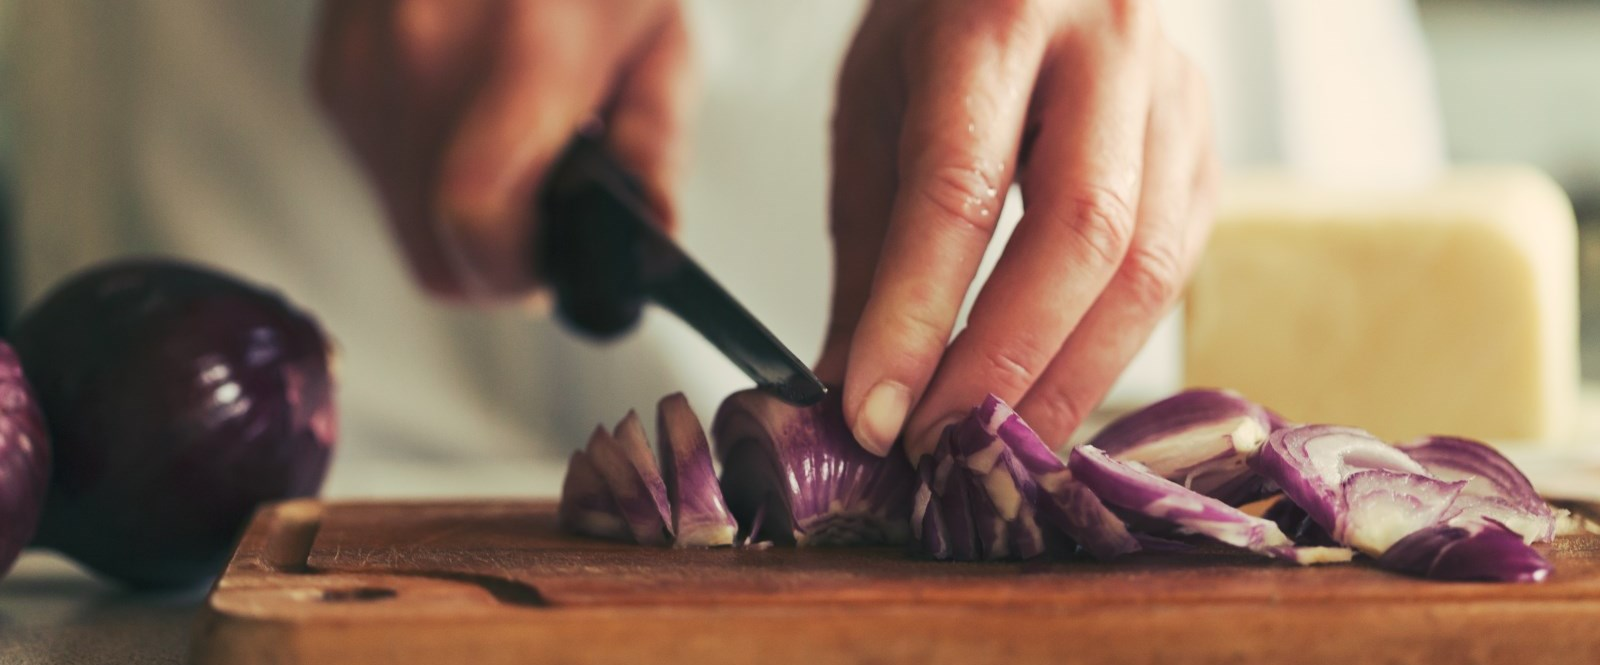 chef cutting red onion on wooden cuttingboard